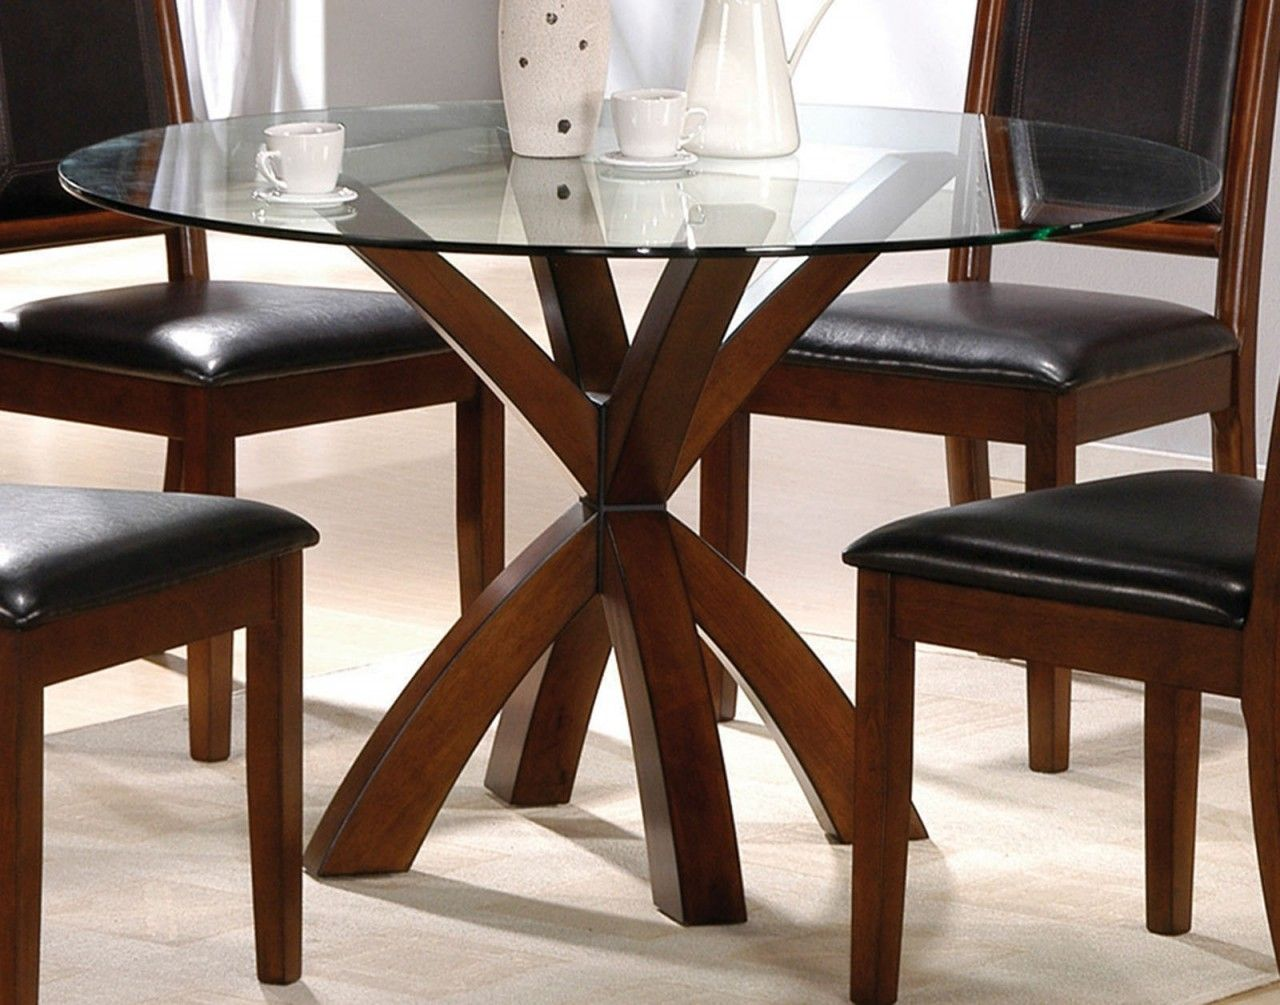 Dining Table Bases For Glass Tops Dining Table Bases Round Glass Table Round Dining Table